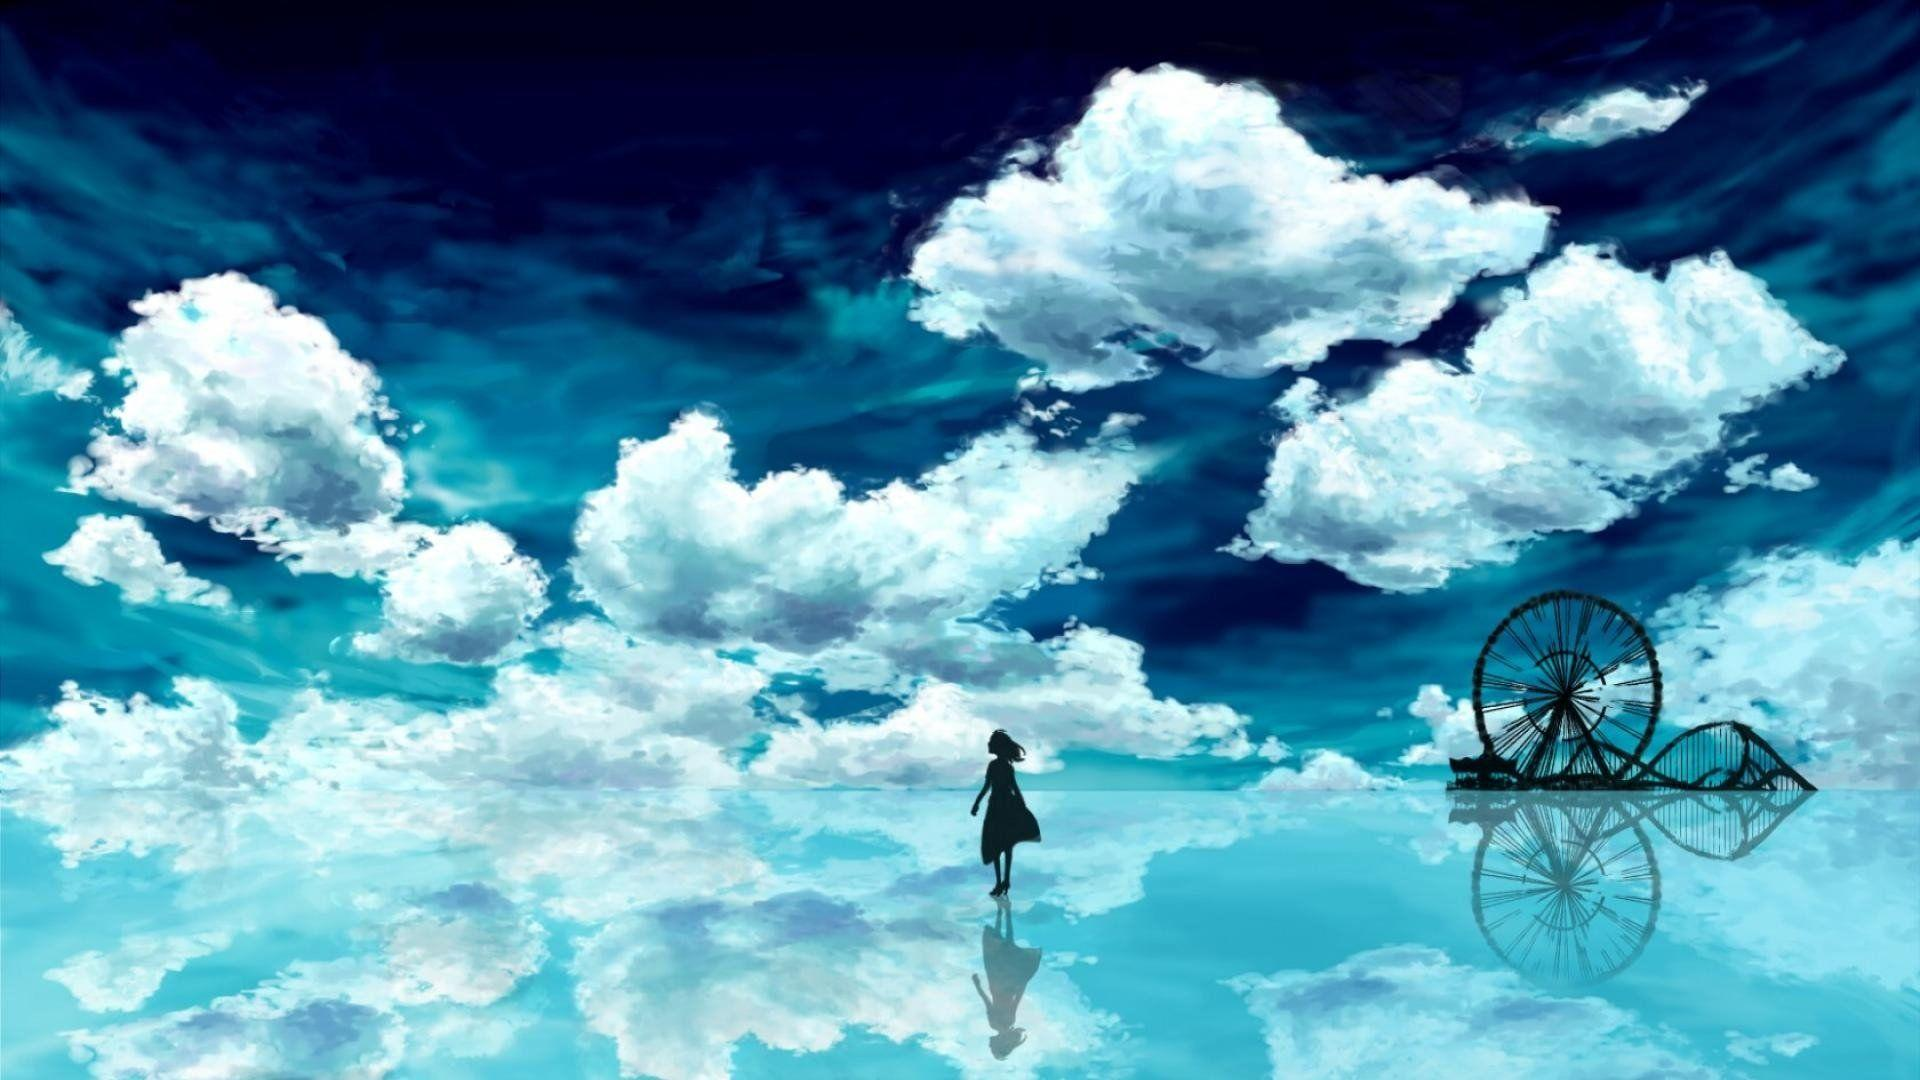 Anime Blue Sky HD Wallpapers